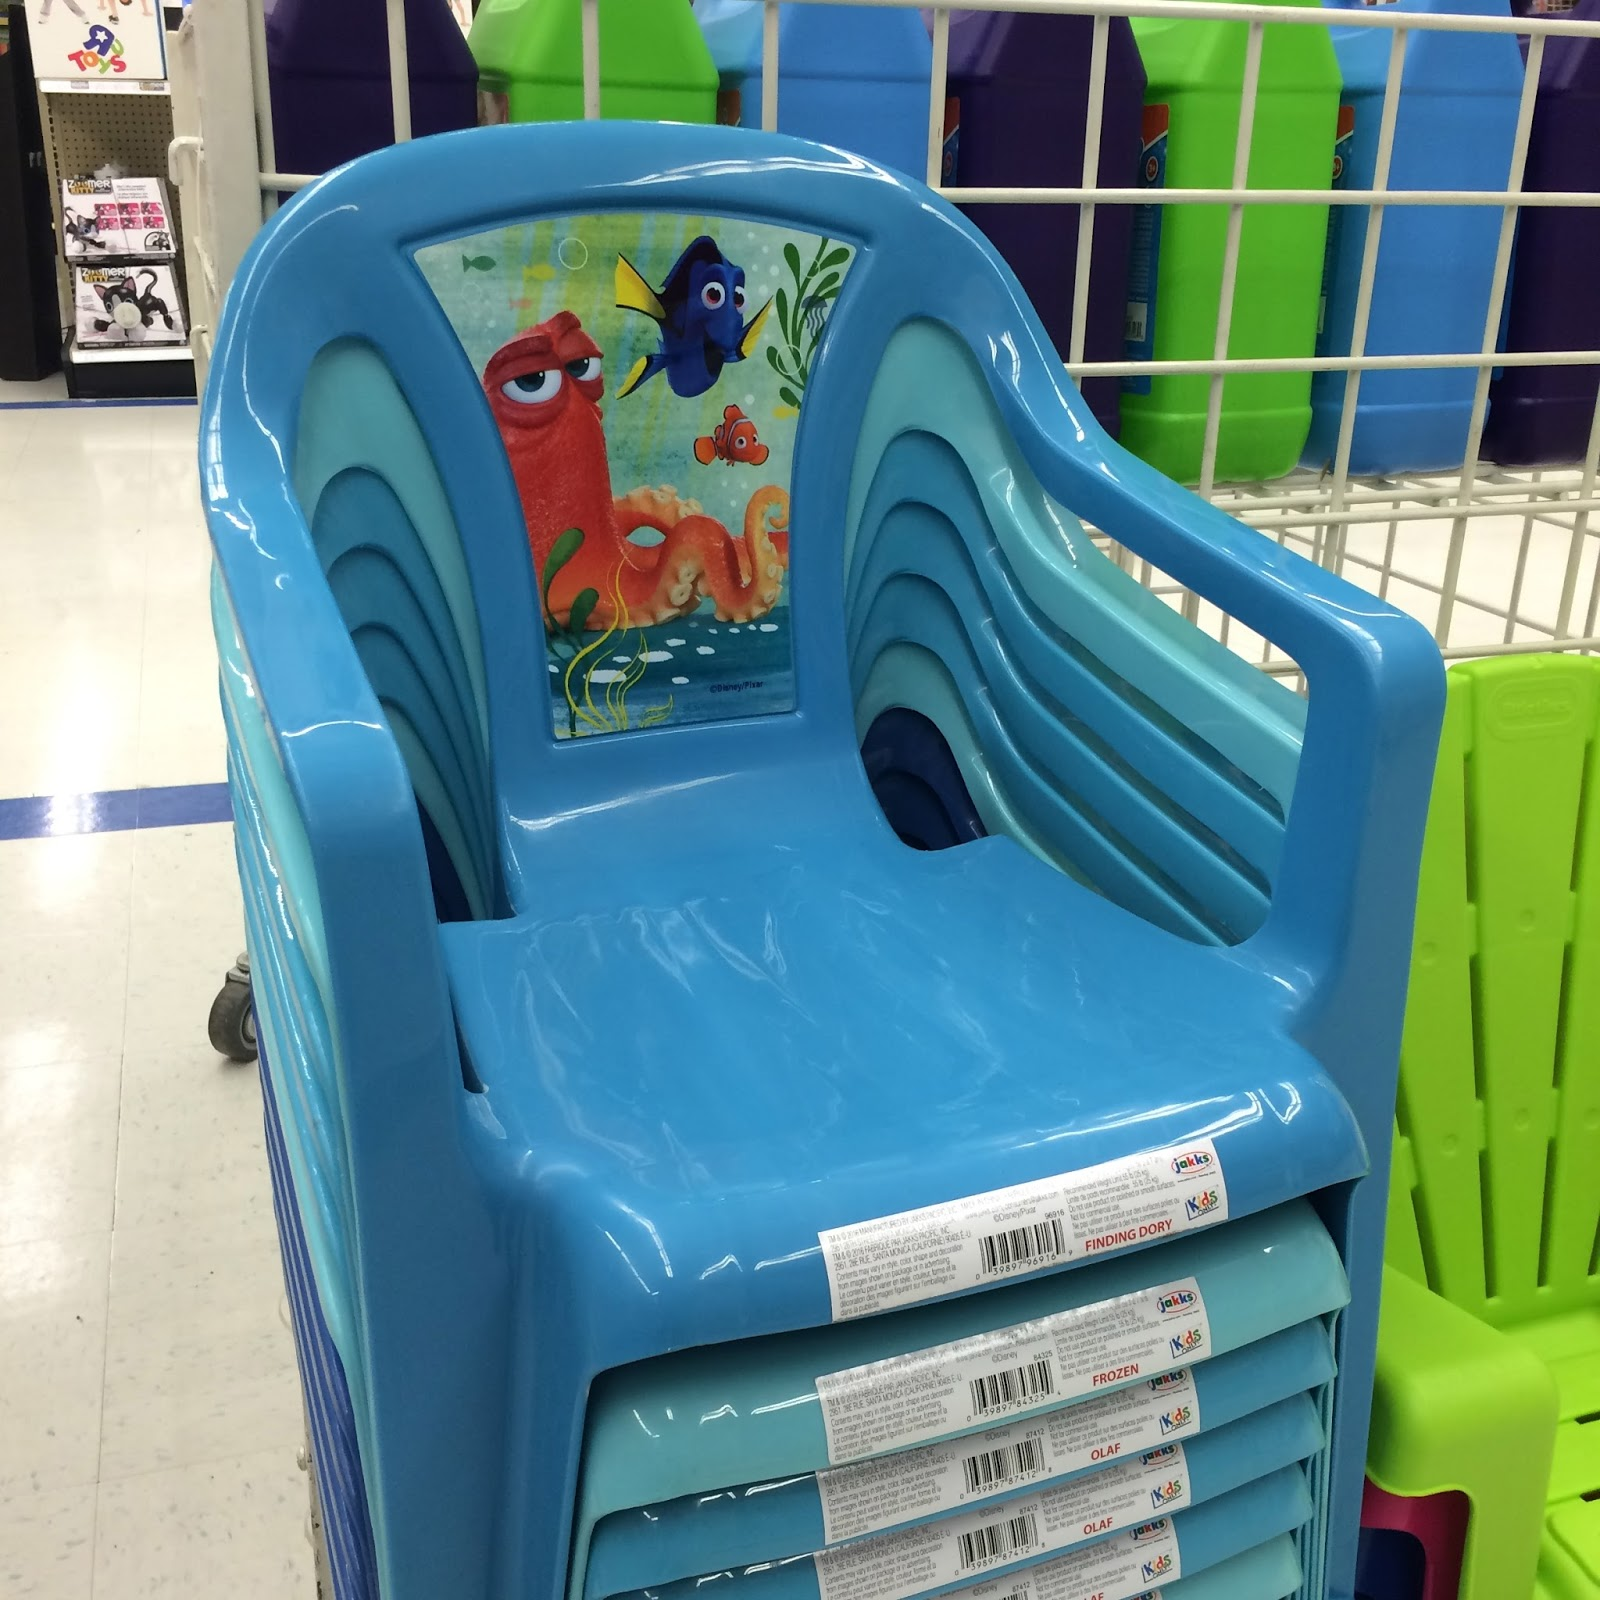 cvs beach chairs invacare transport chair replacement parts dan the pixar fan: events: finding dory merch release (swim gear, water toys, food items, crafts ...